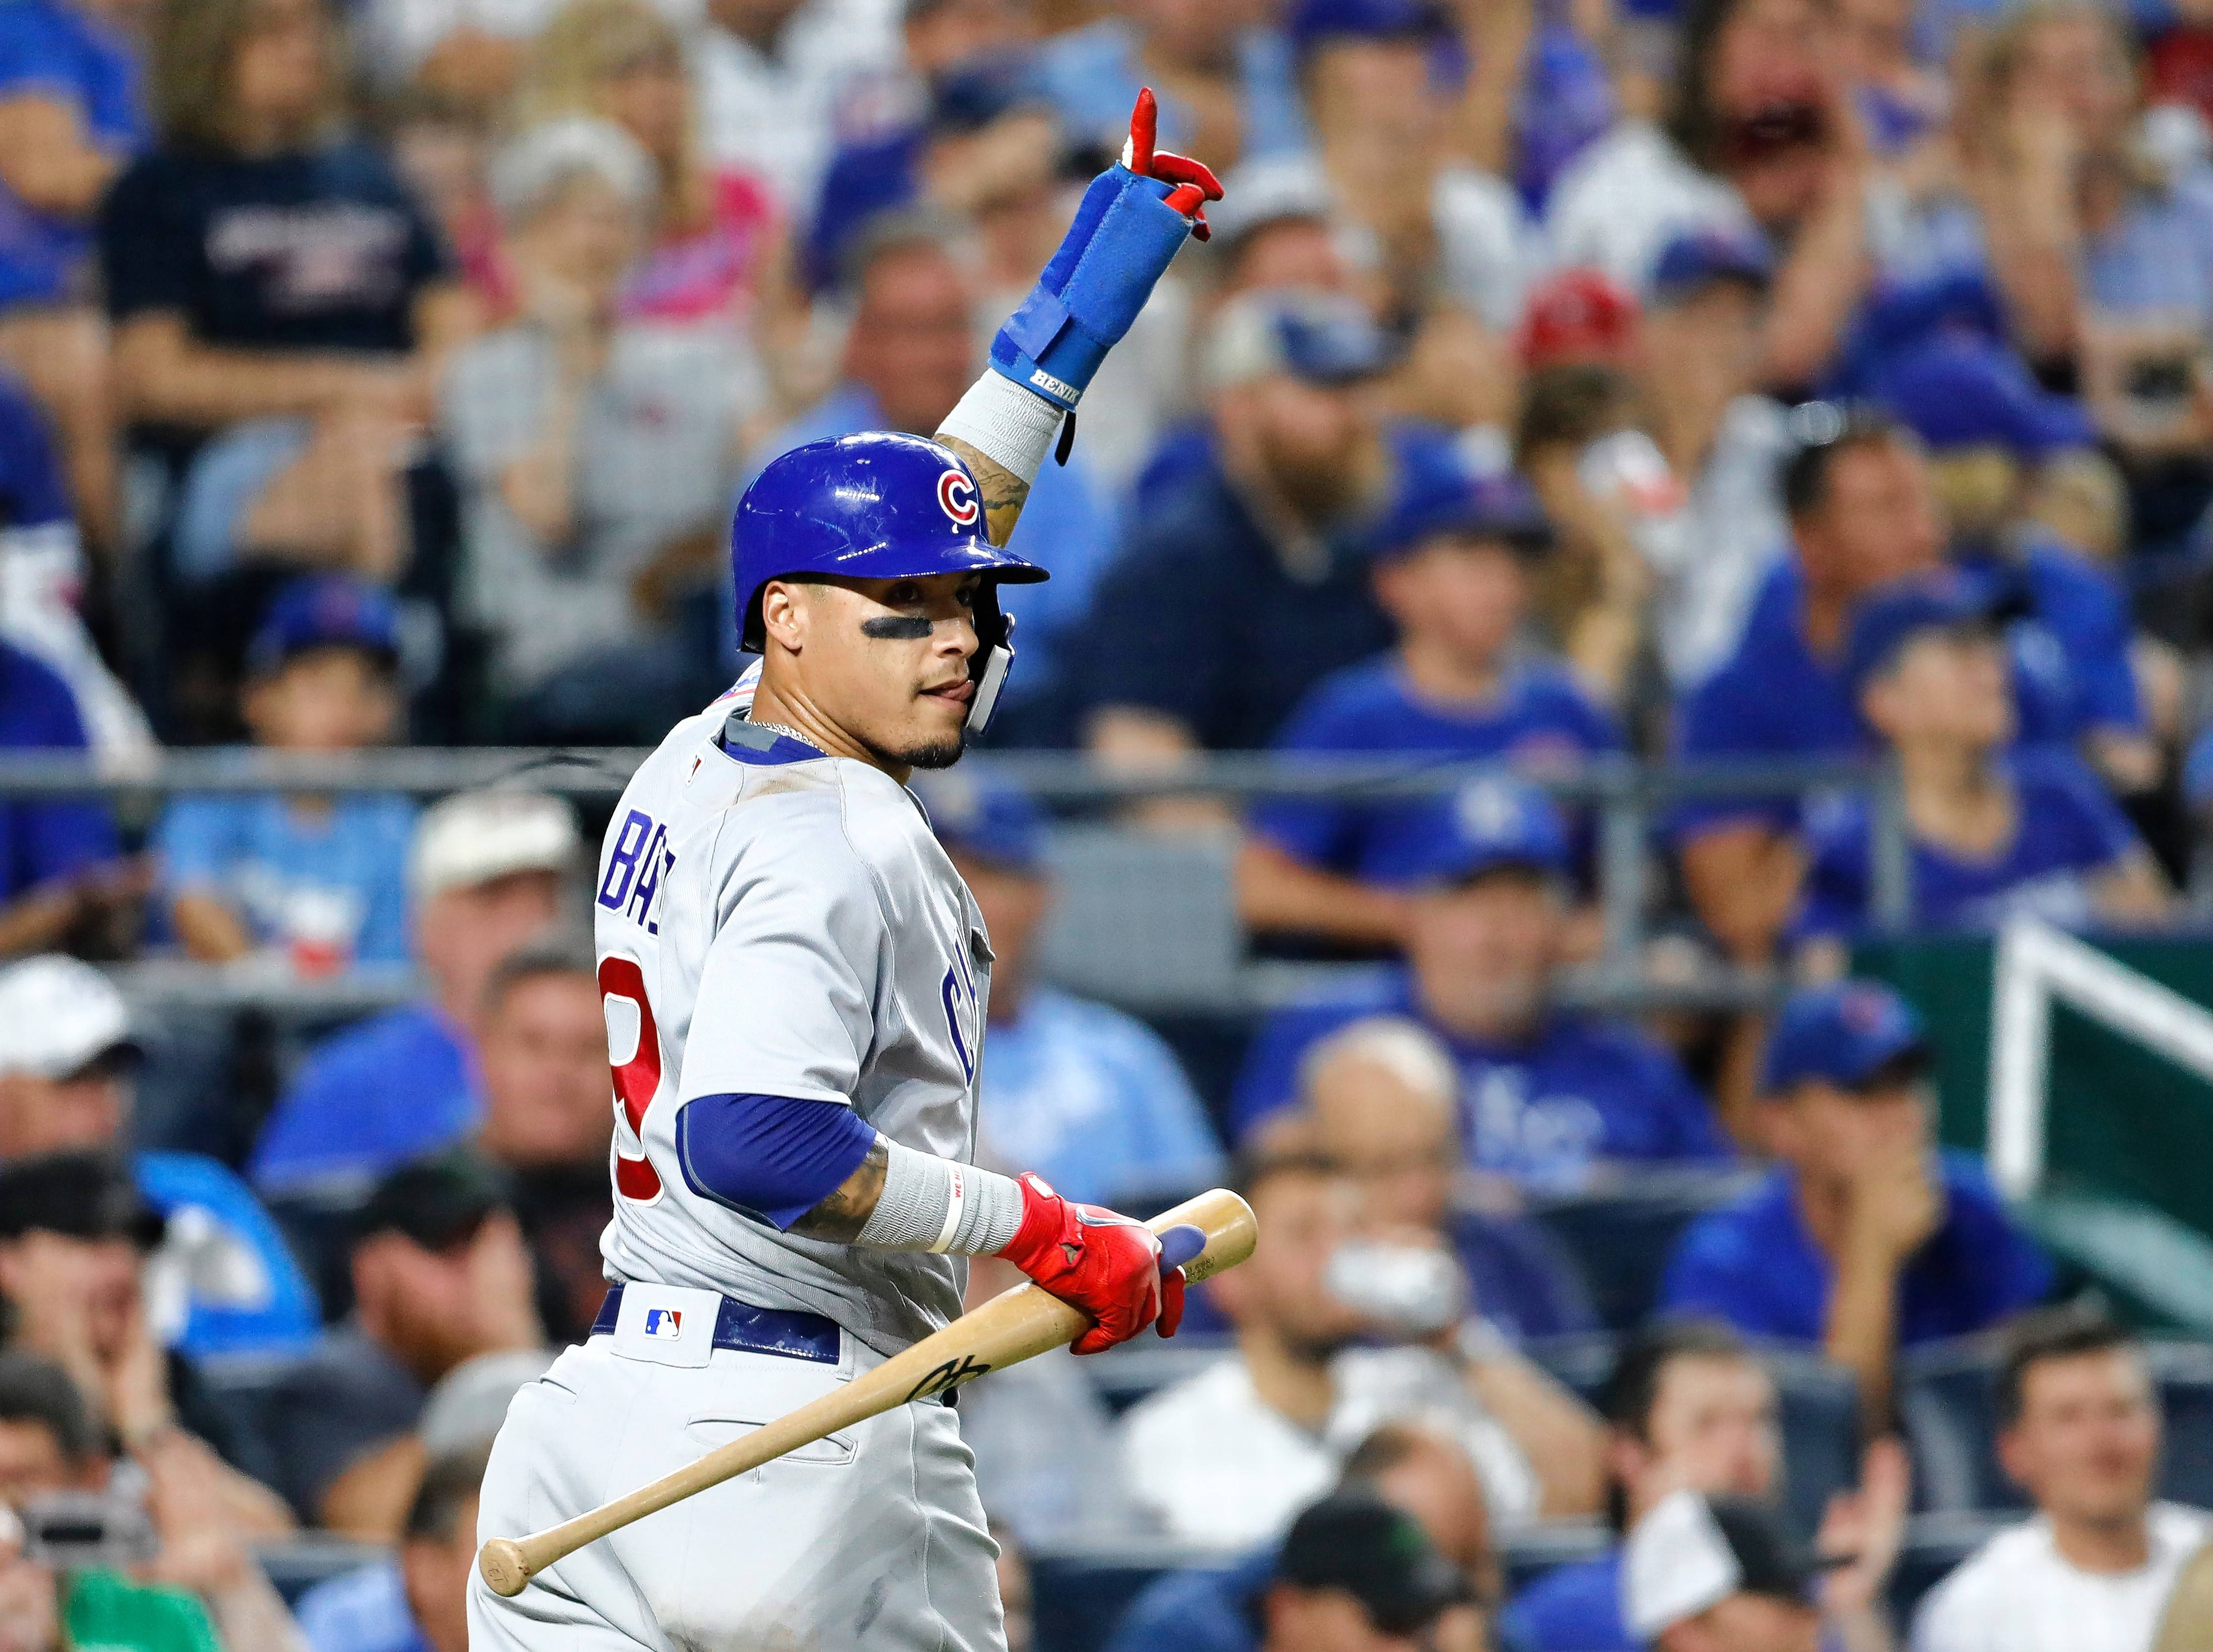 Bruce Miles says Chicago Cubs infielder Javier Baez has a chance to win MVP honors in the National League this season.